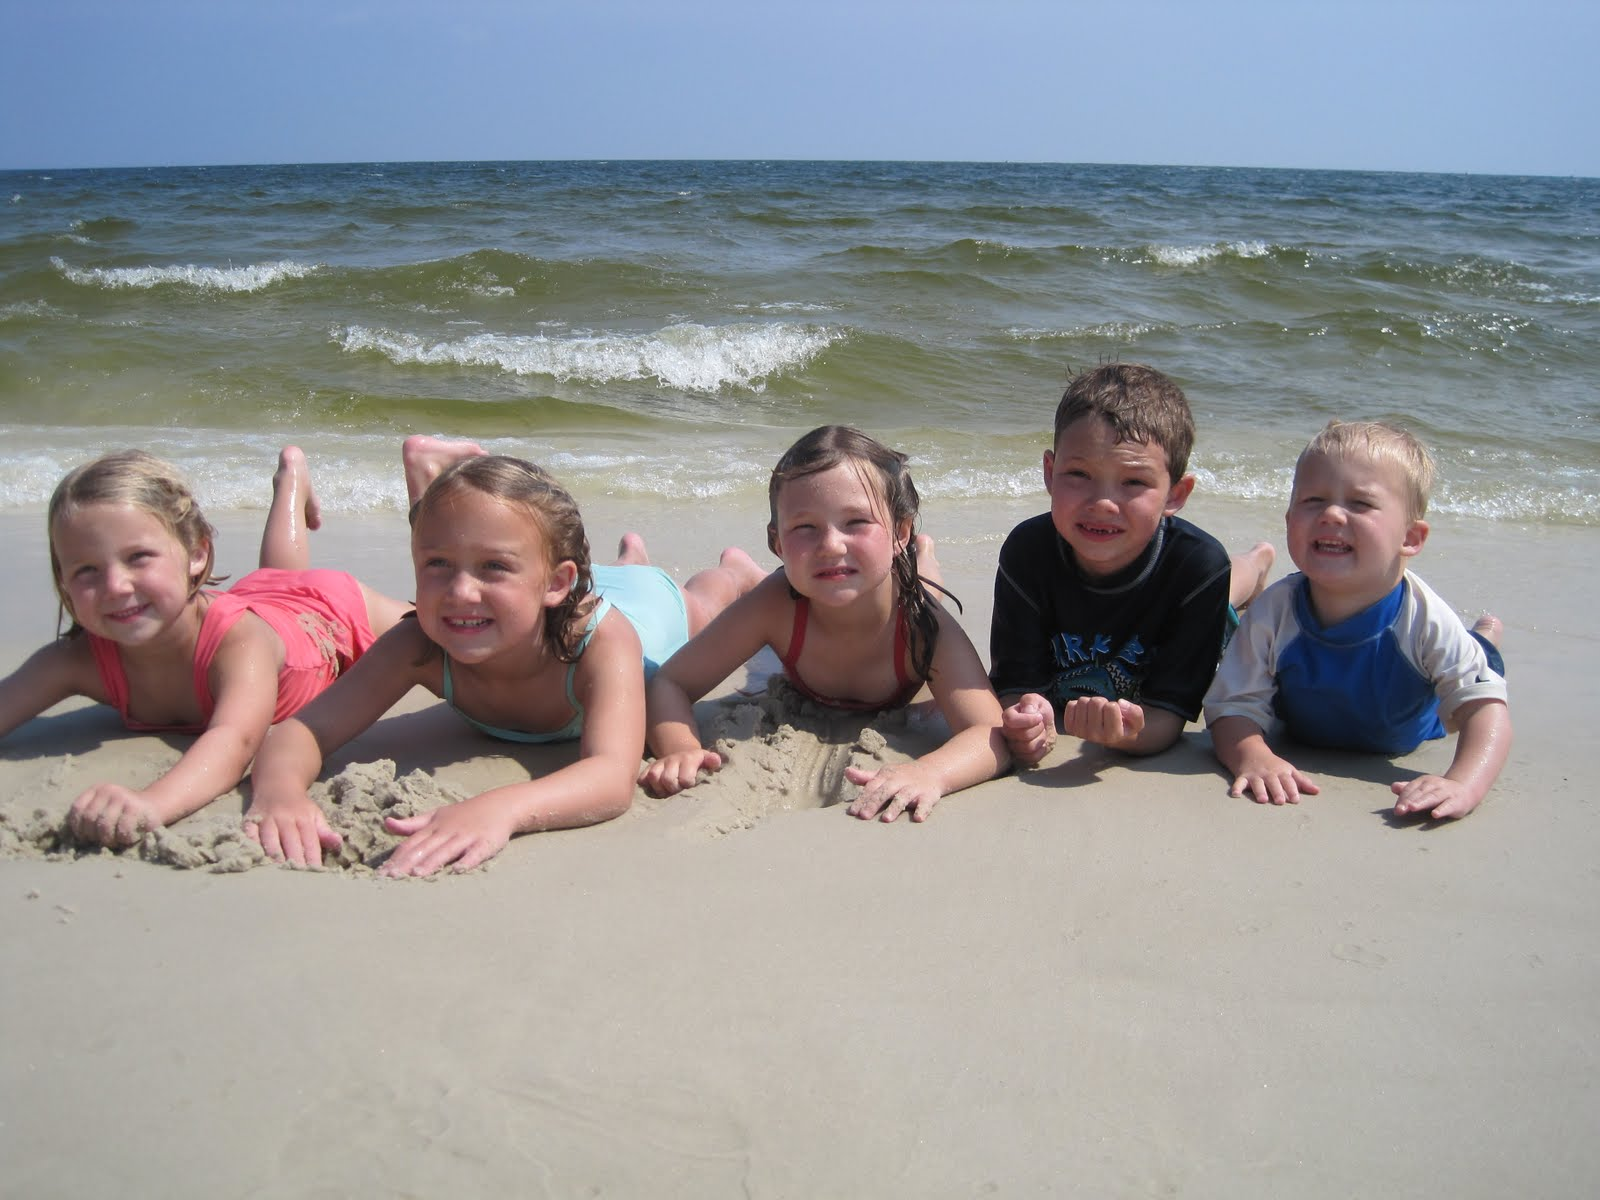 Mounts Family: St George Island Vacation 2010 Part 2